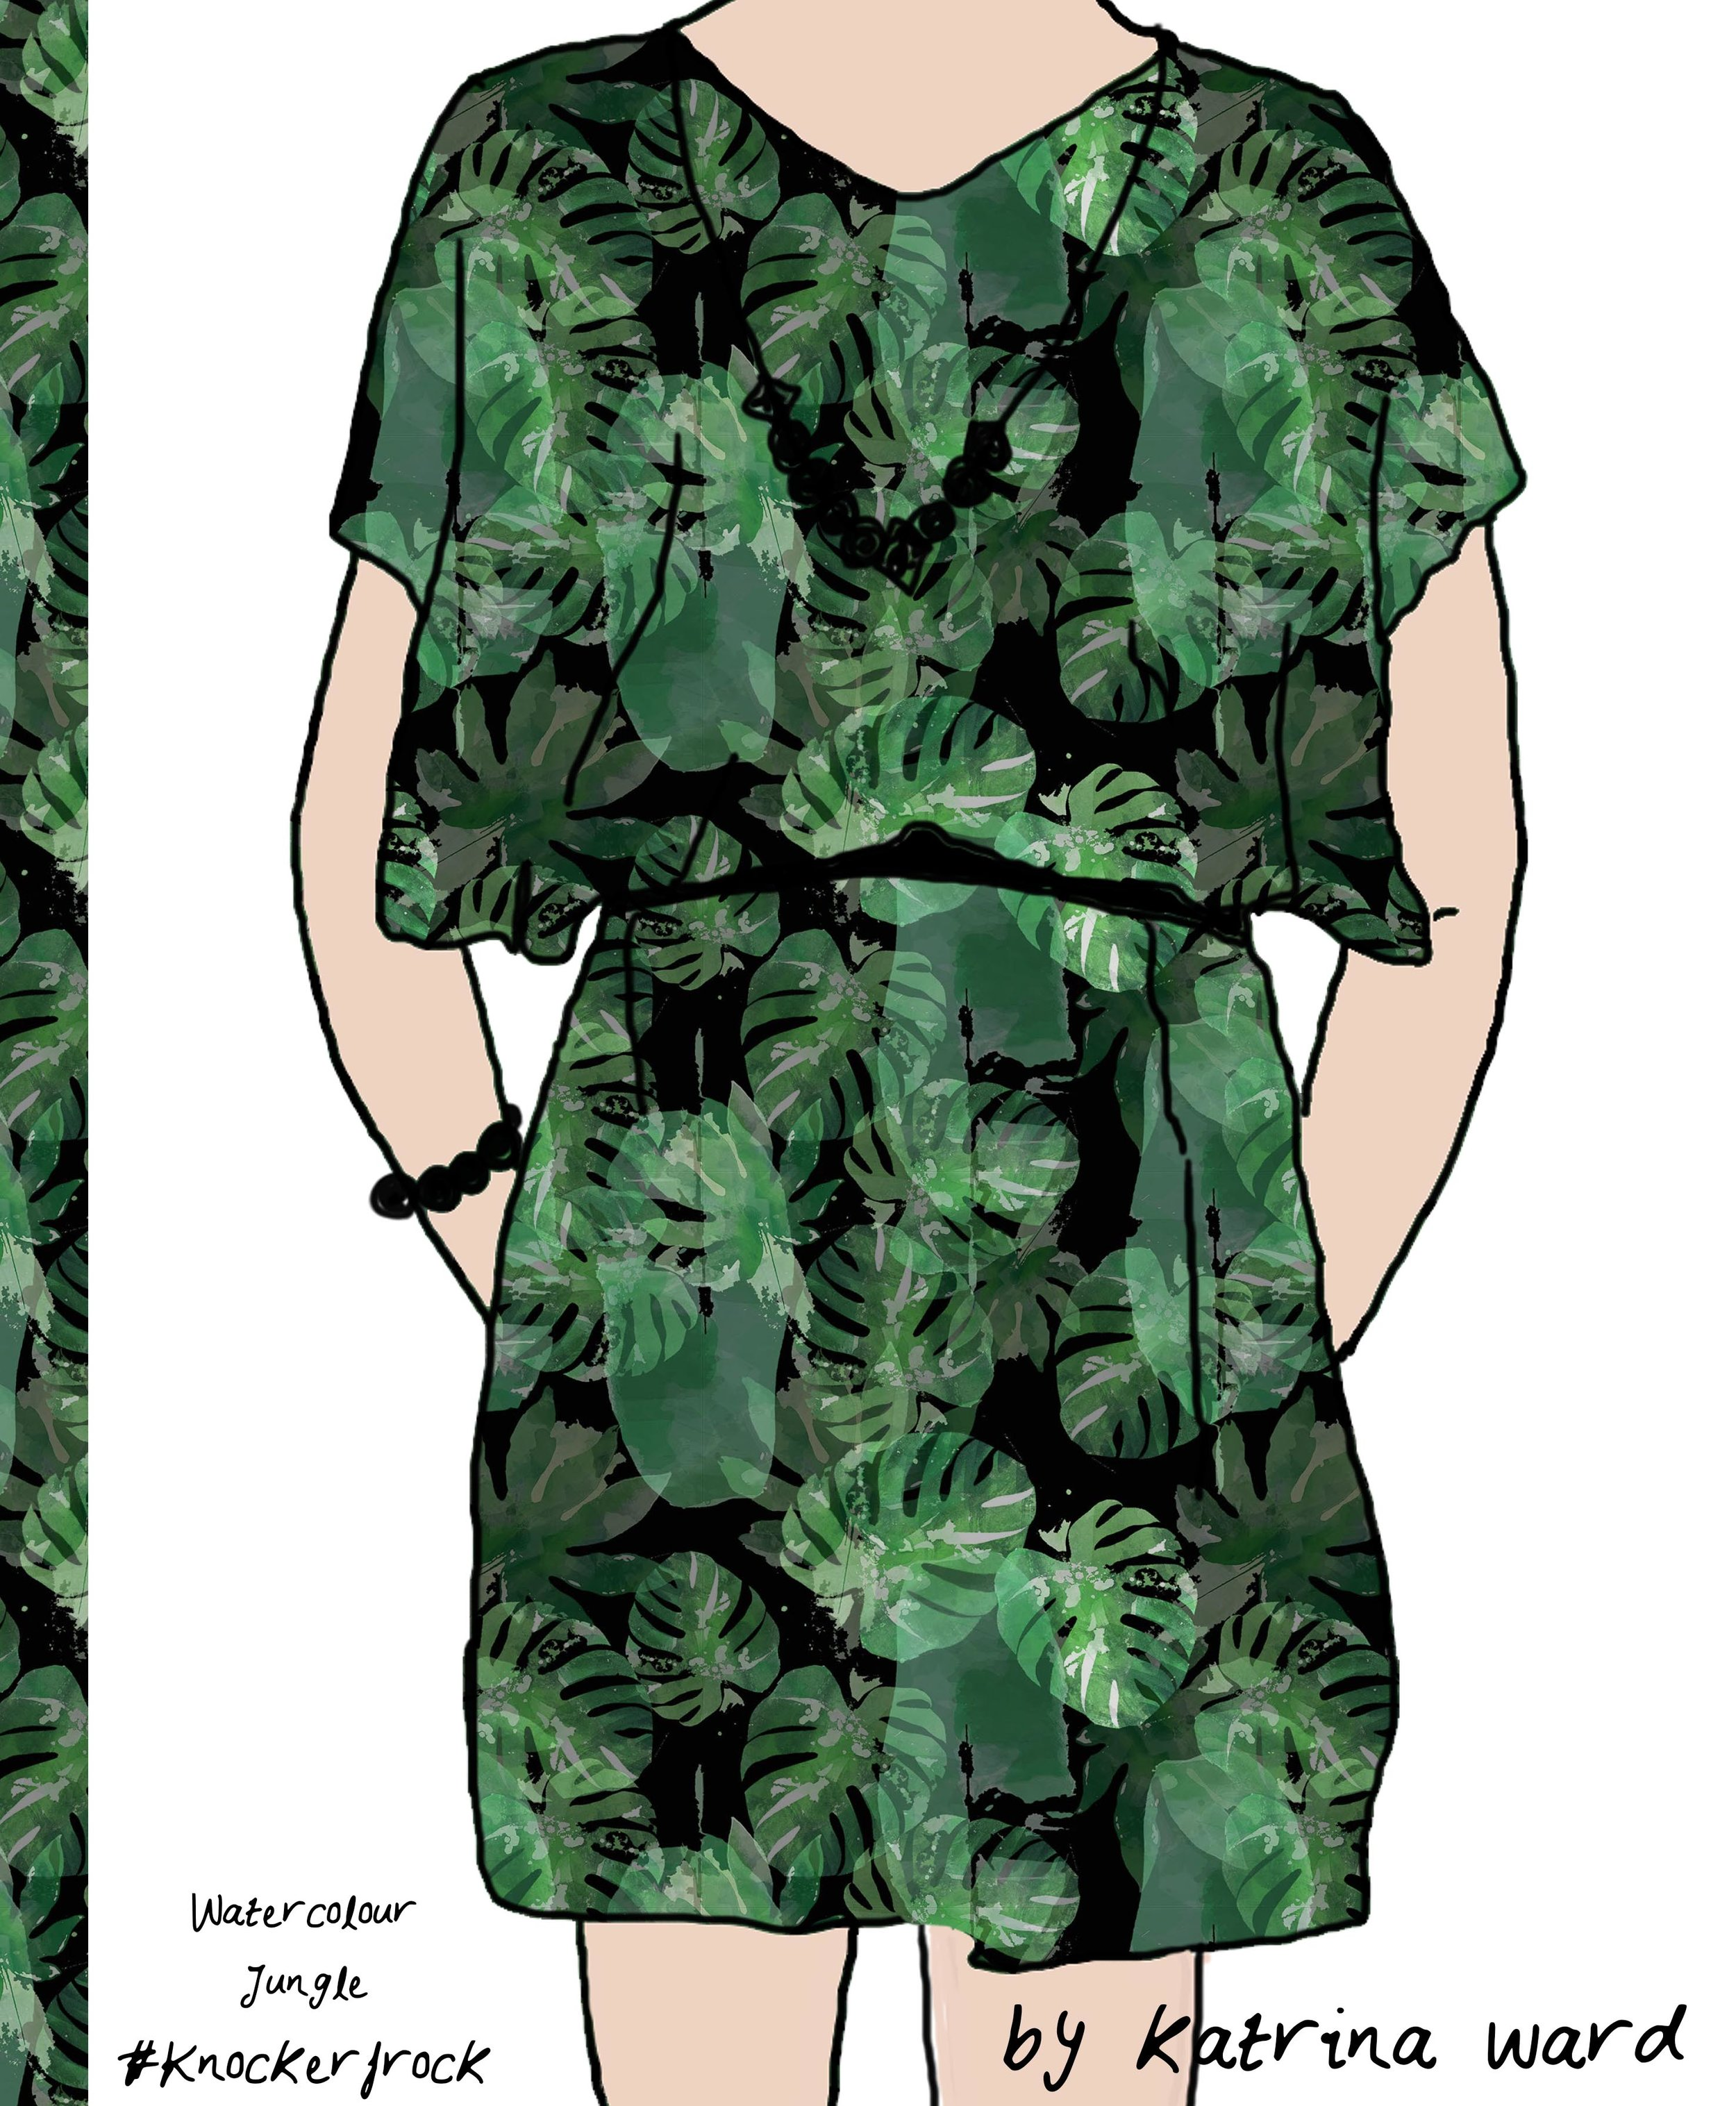 watercolour jungle knockerfrock.jpg